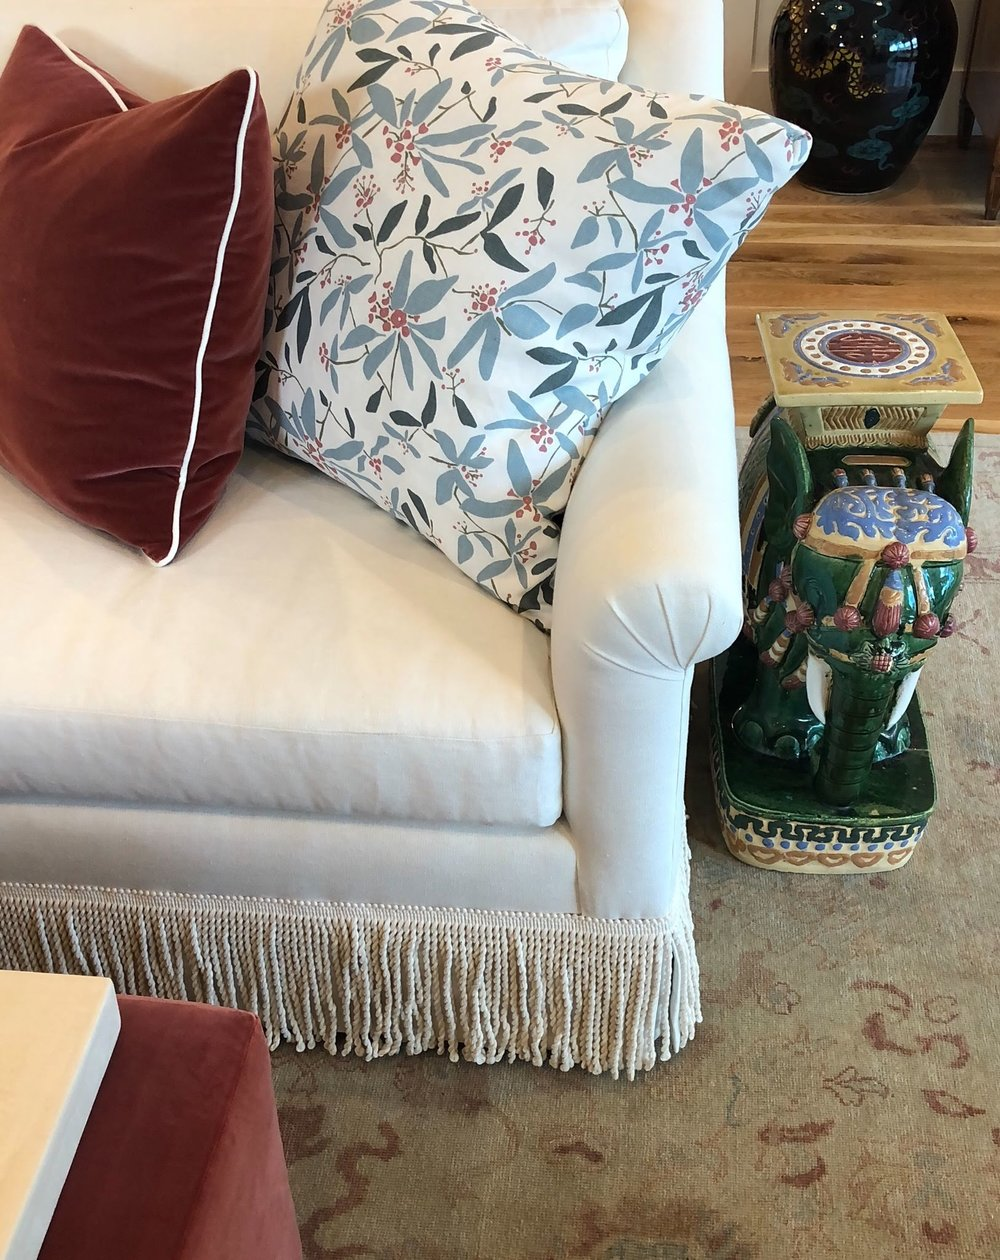 In the main living room, Lindsey added a formal touch with bullion fringe around the sofa.